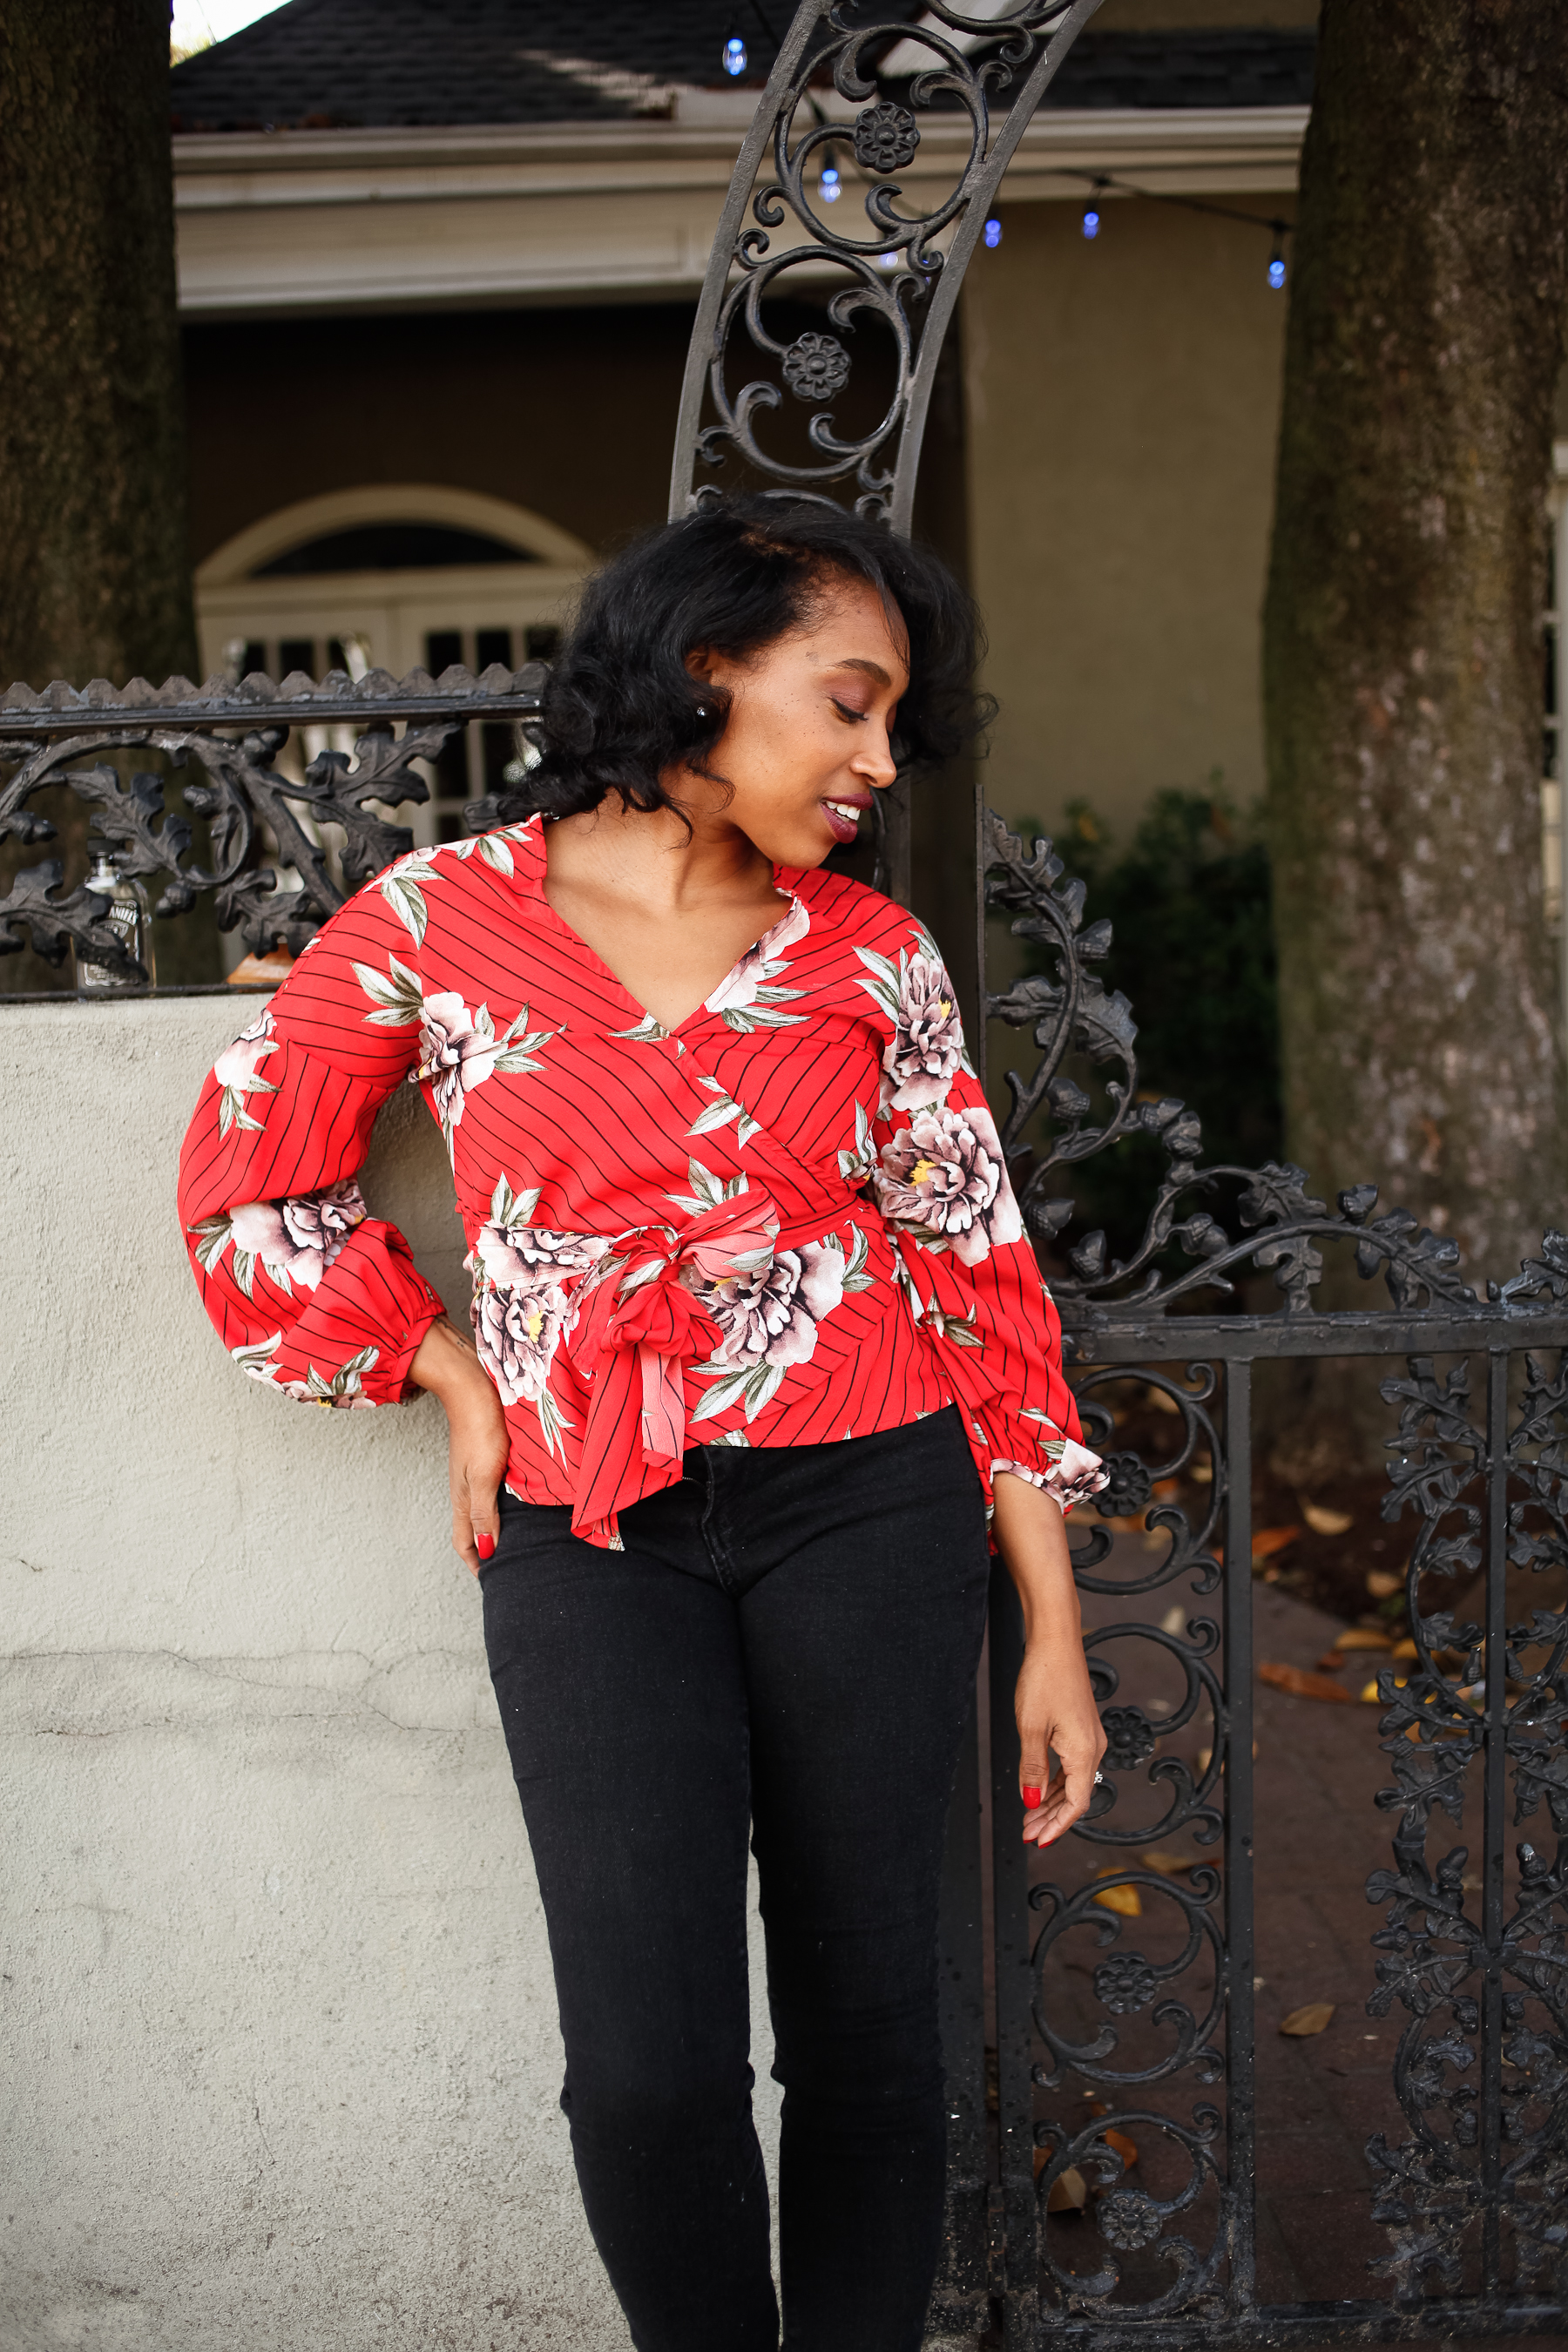 Andrea Fenise Memphis Fashion Blogger shares outfit post on red blouse and black denim